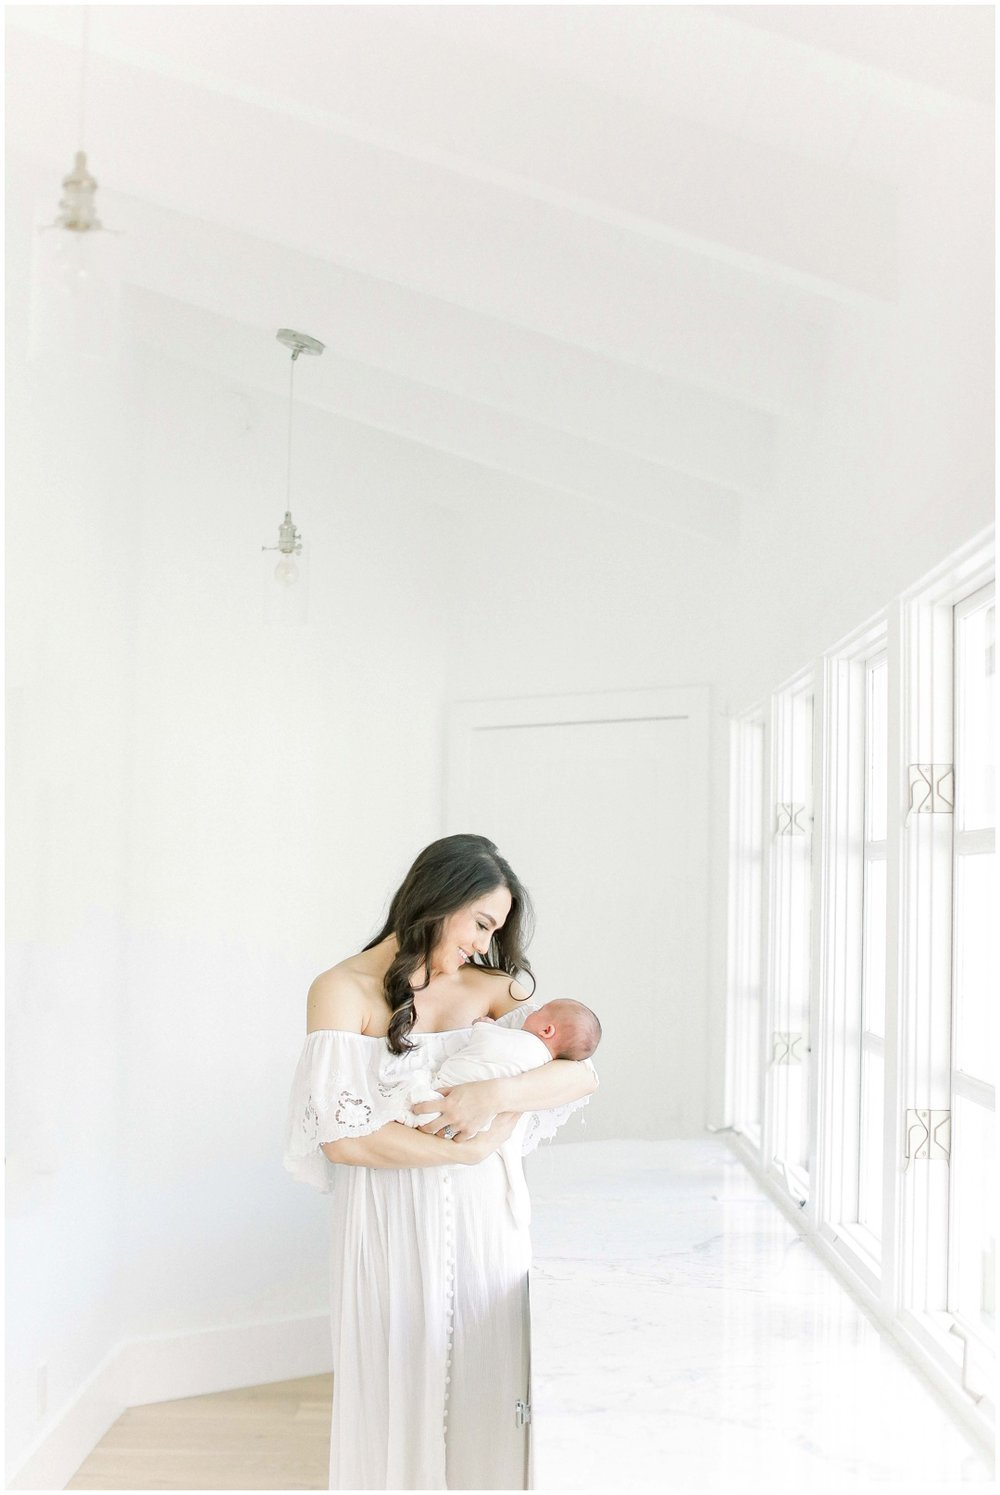 Newport_Beach_Newborn_Photographer_Newport_Beach_Maternity_Photographer_Orange_County_Family_Photographer_Cori_Kleckner_Photography_Huntington_Beach_Photographer_Maile_Trumbo_Mark_Trumbo_Photos_2709.jpg